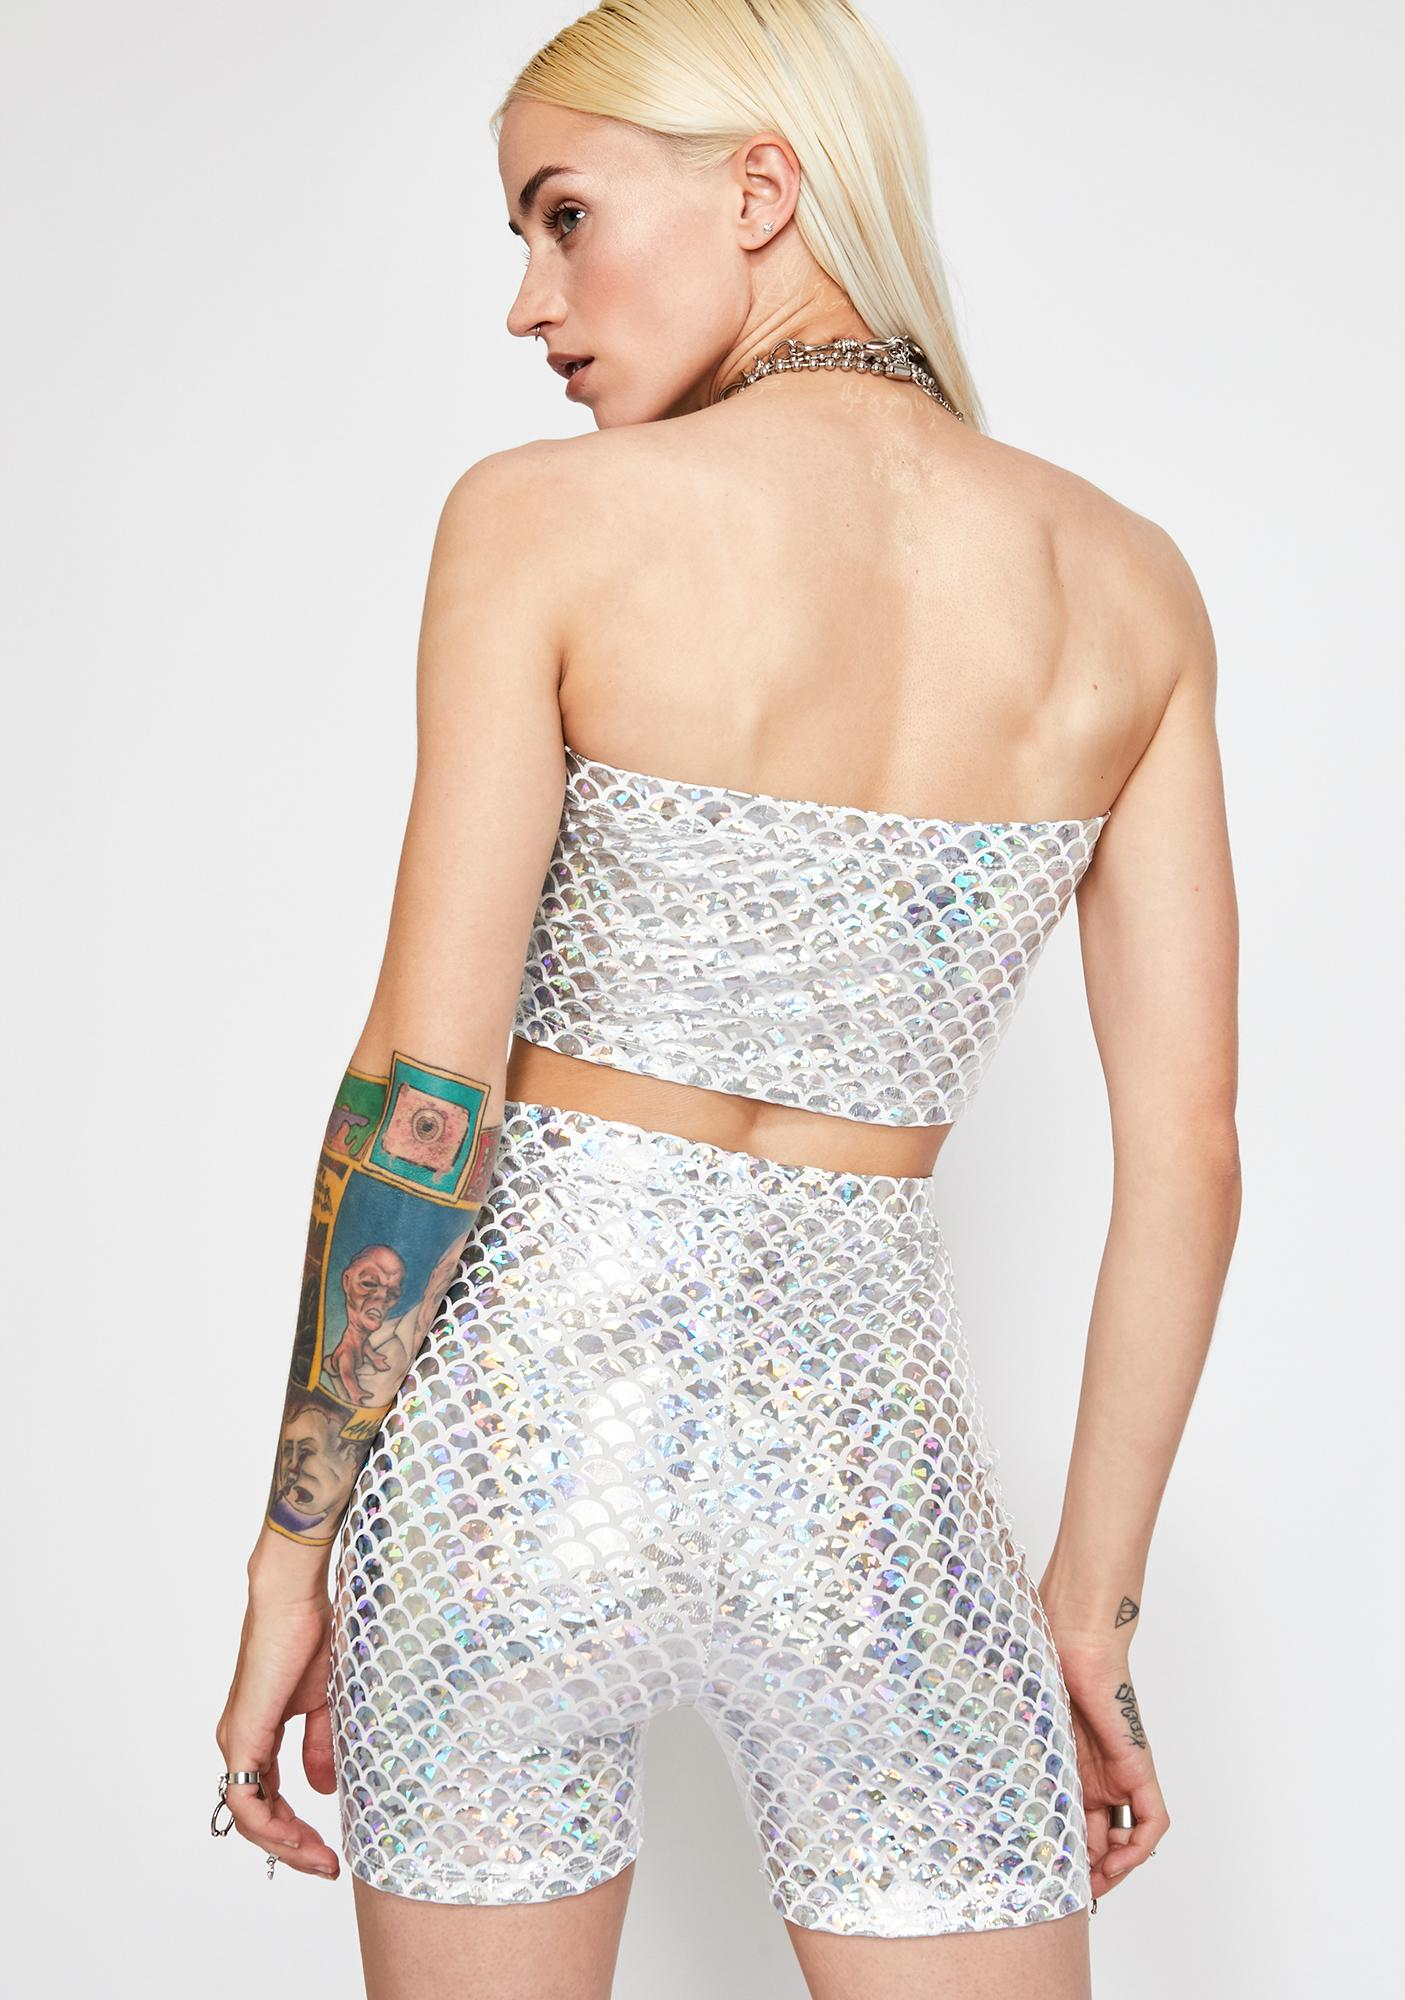 Rave Gal Holographic Mermaid Set